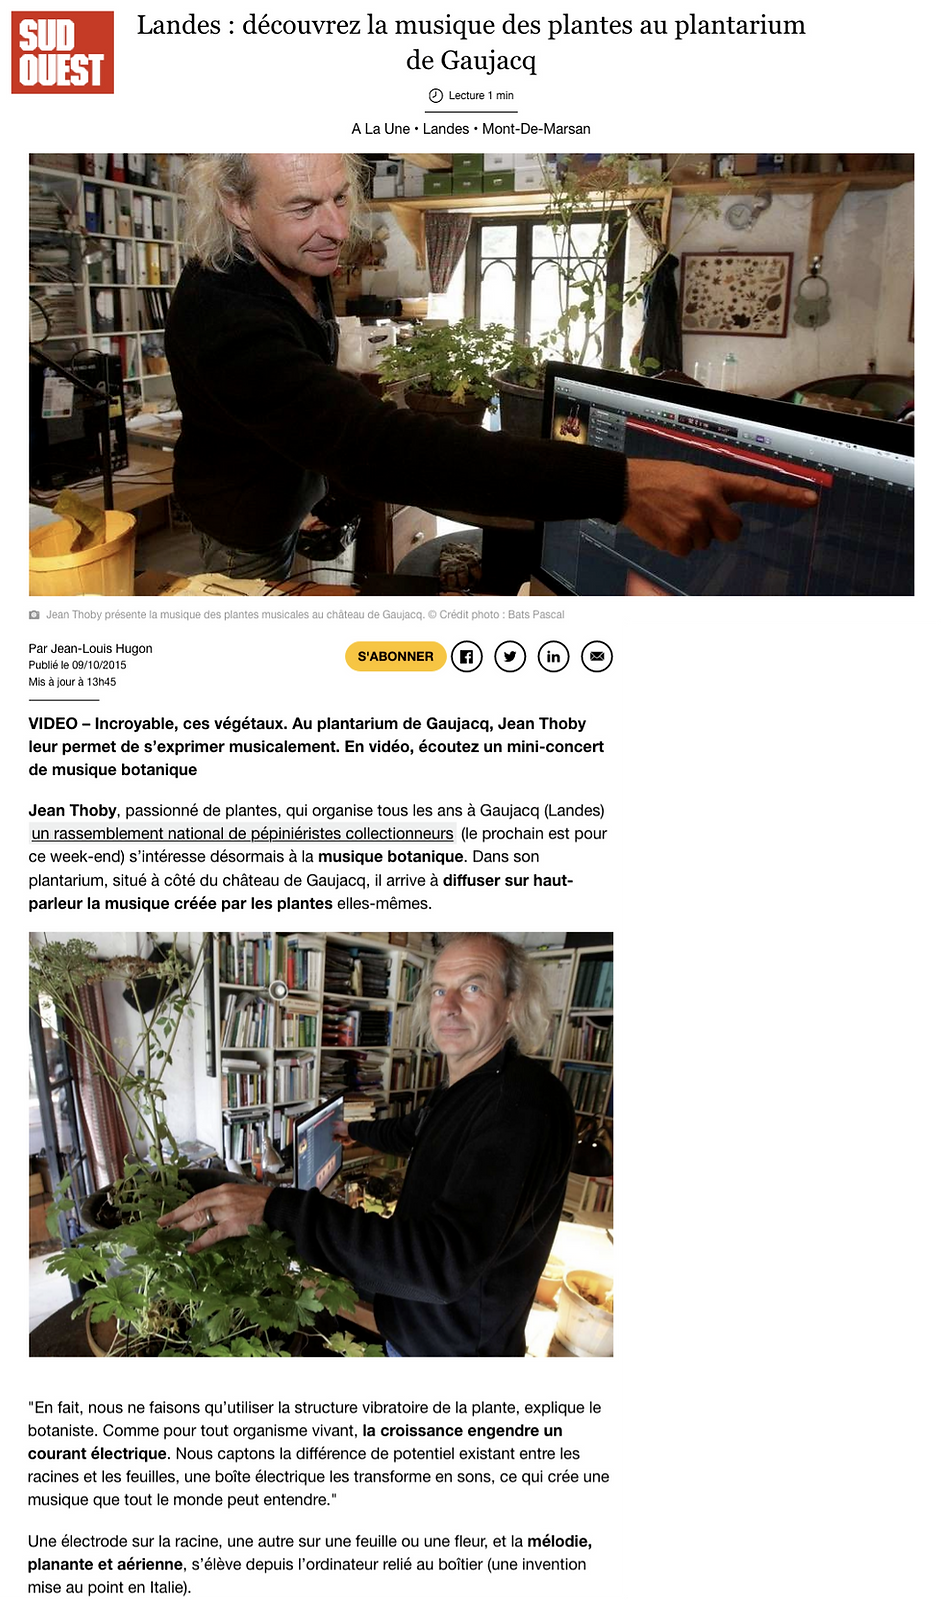 Sud-ouest 2015.png